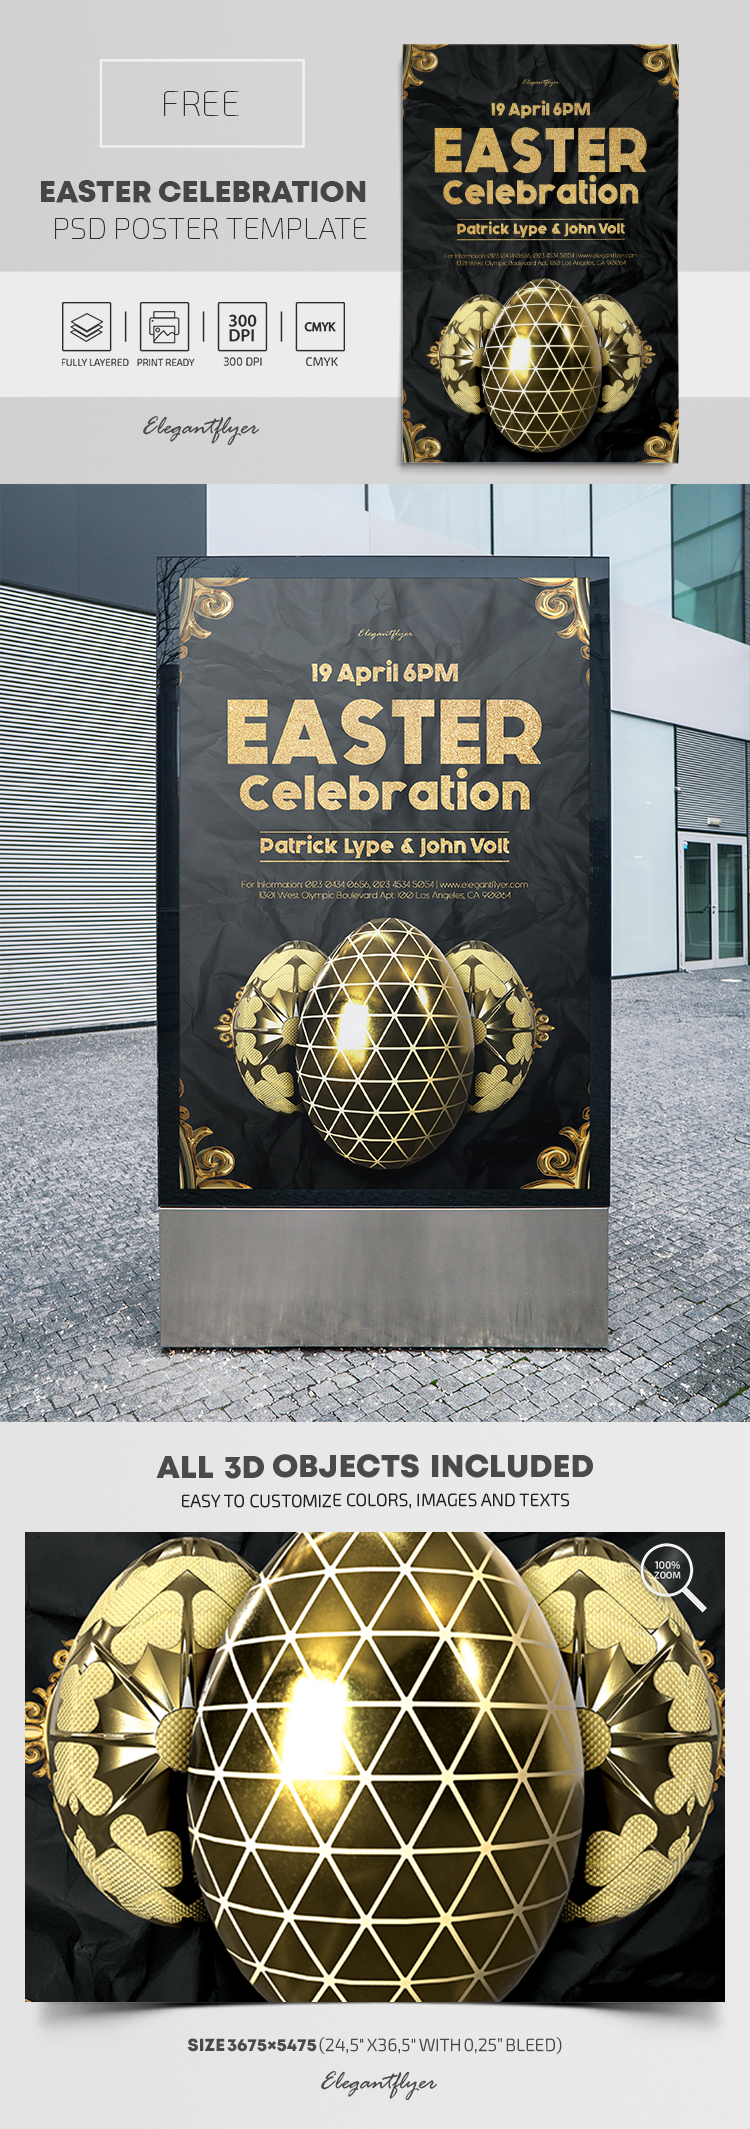 Easter Celebration – FREE PSD Poster Template